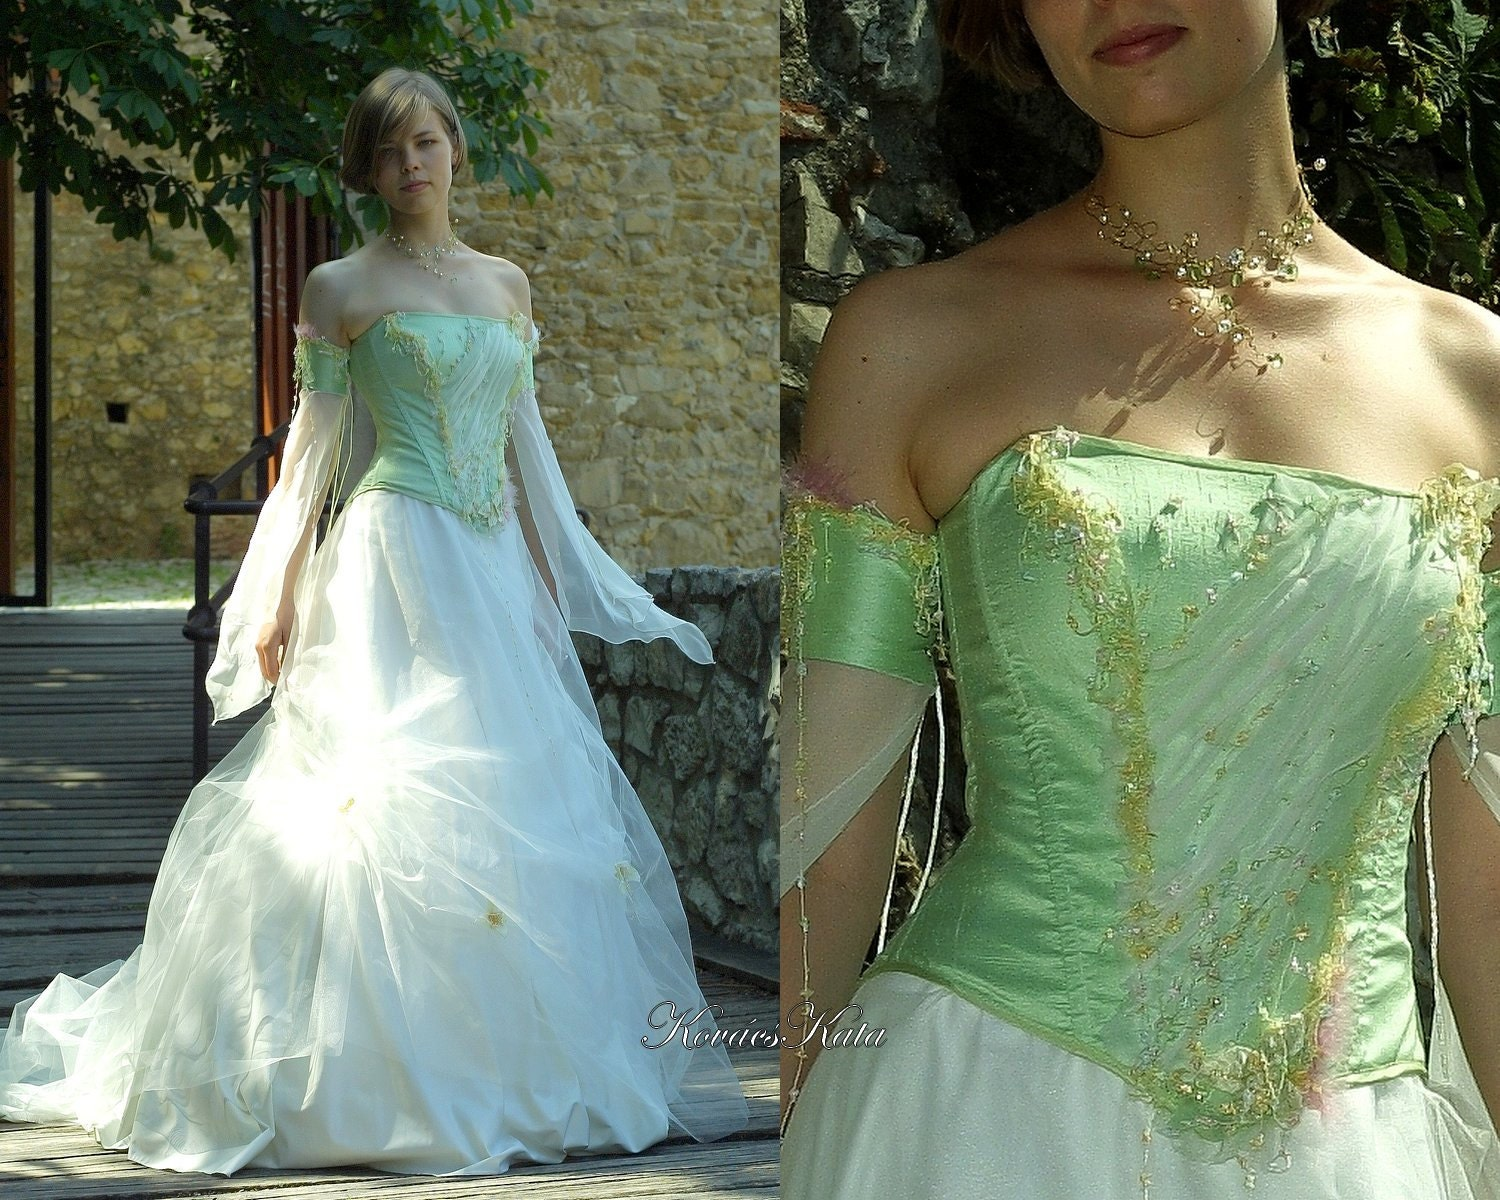 Fairy Princess Corseted Ball or Alternative Wedding Gown